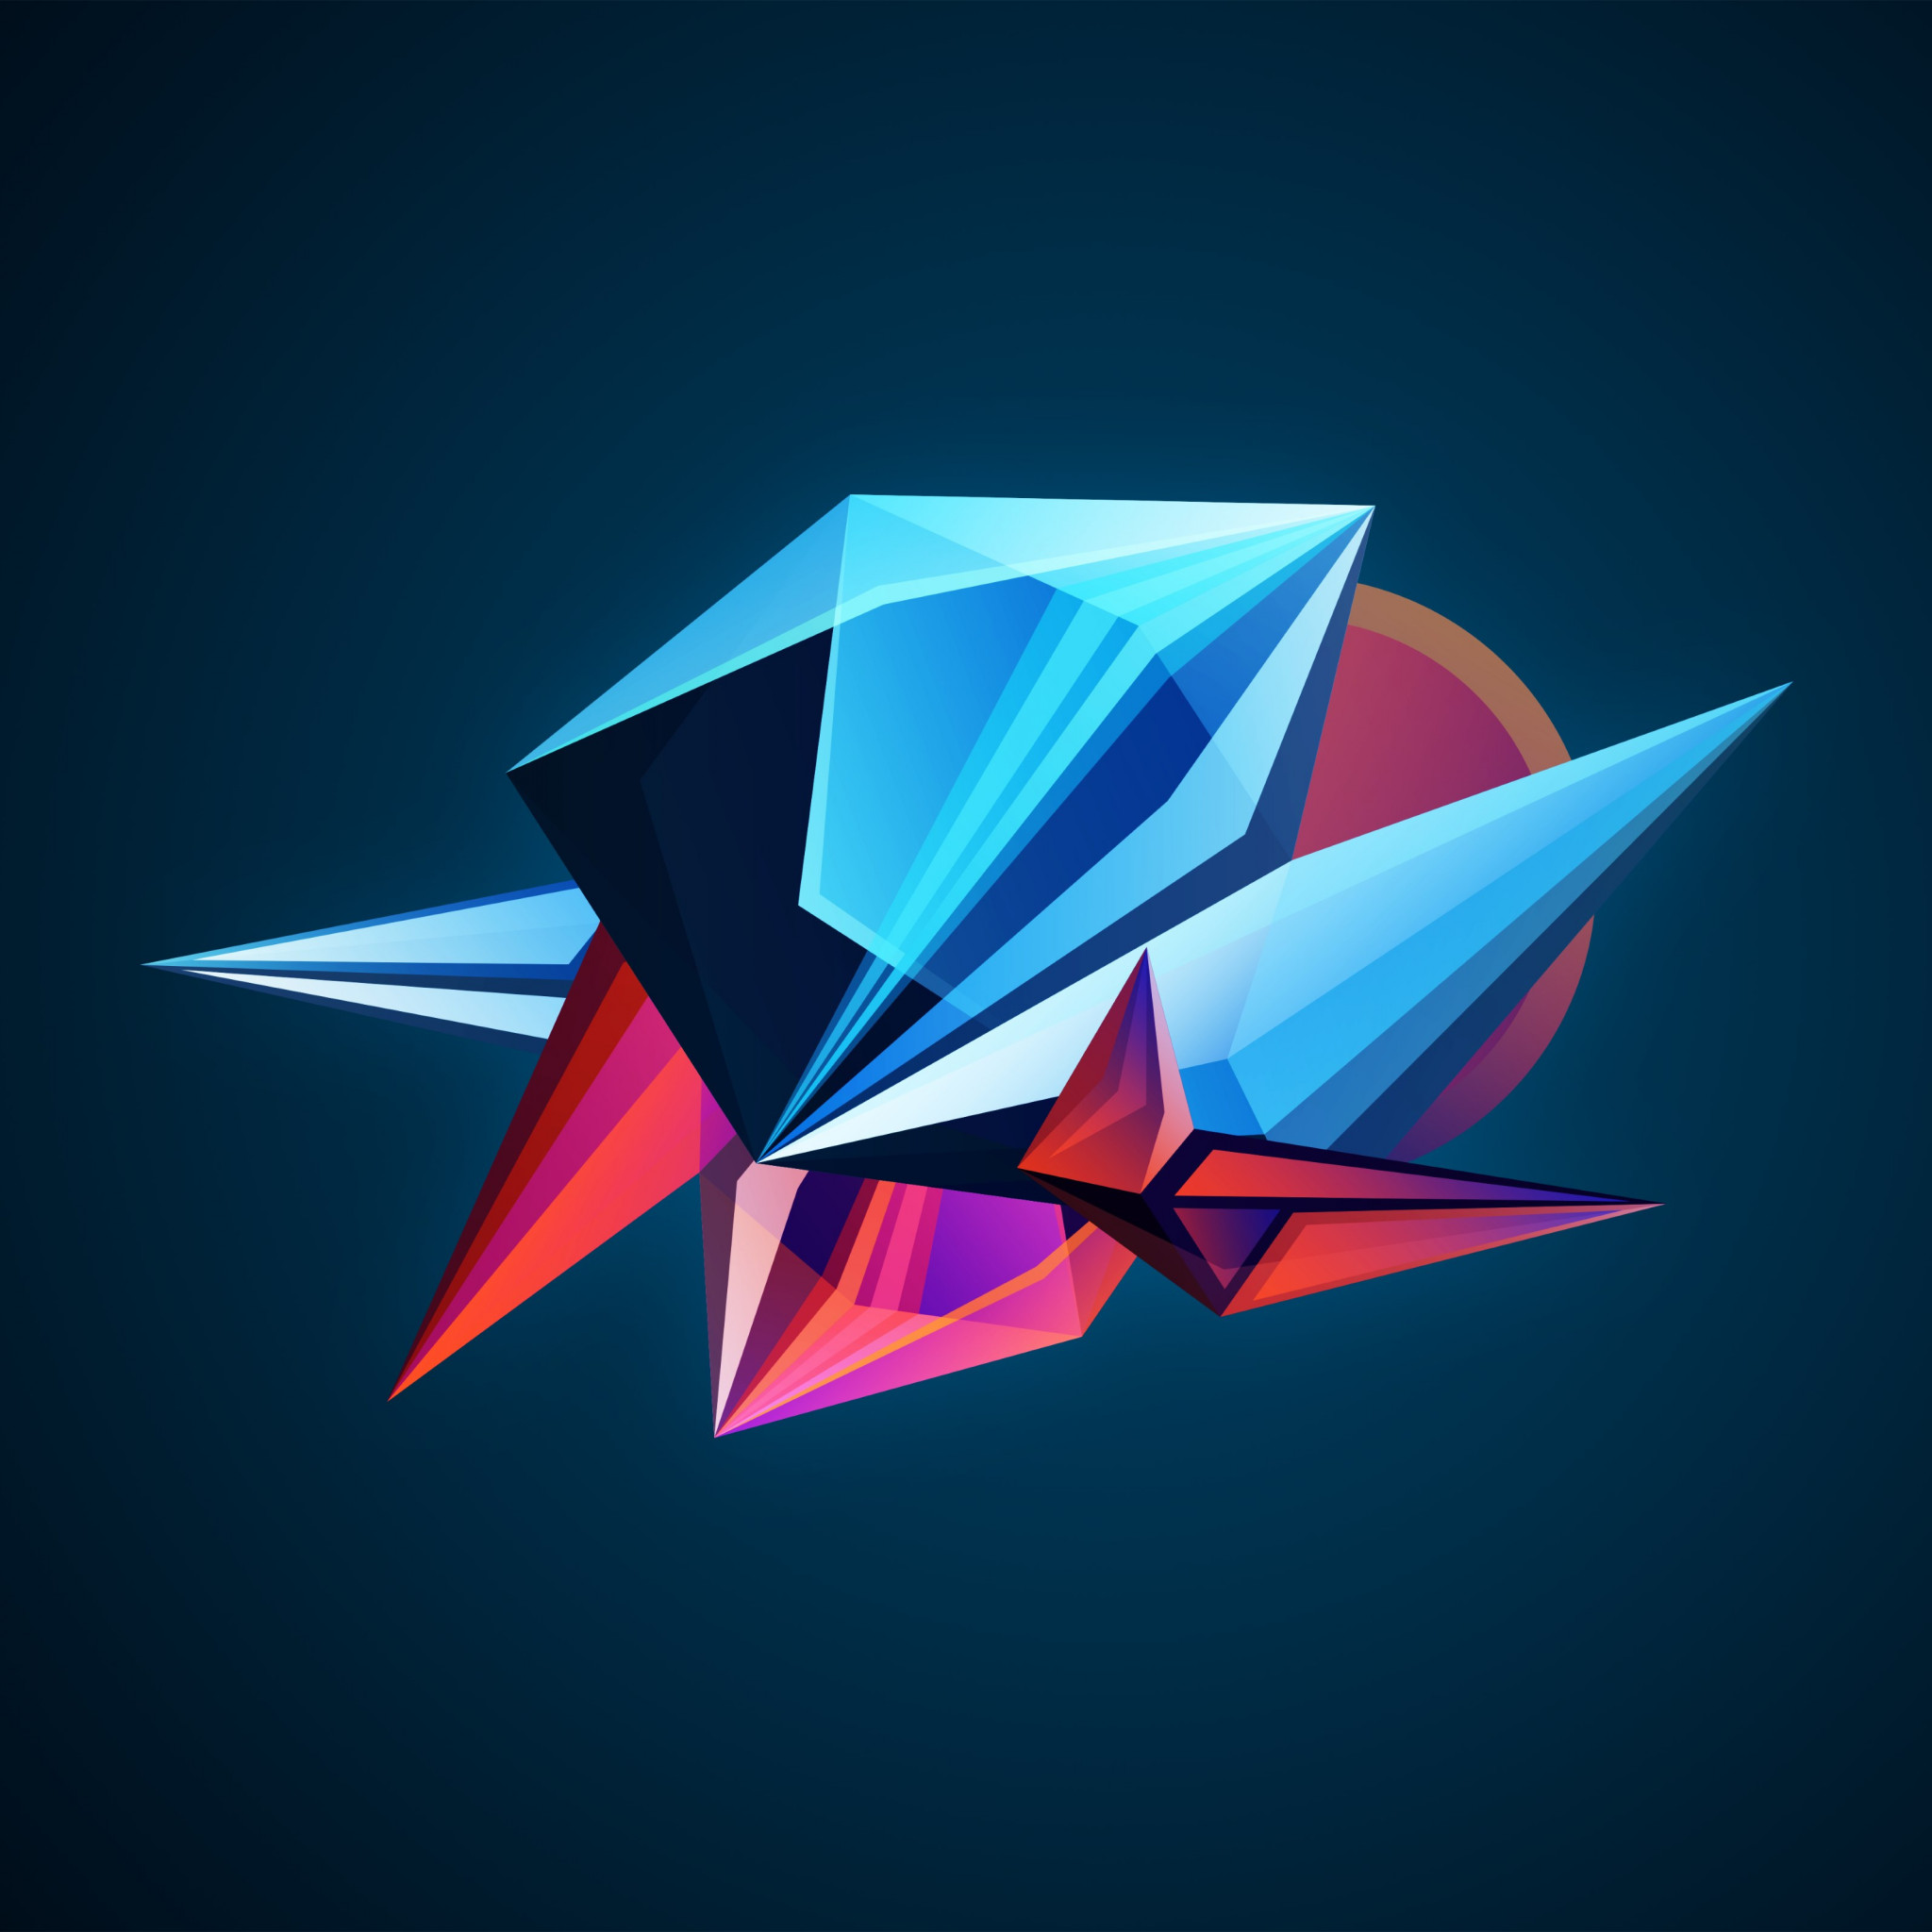 Download Wallpaper: Abstract 3D Shapes 2048x2048